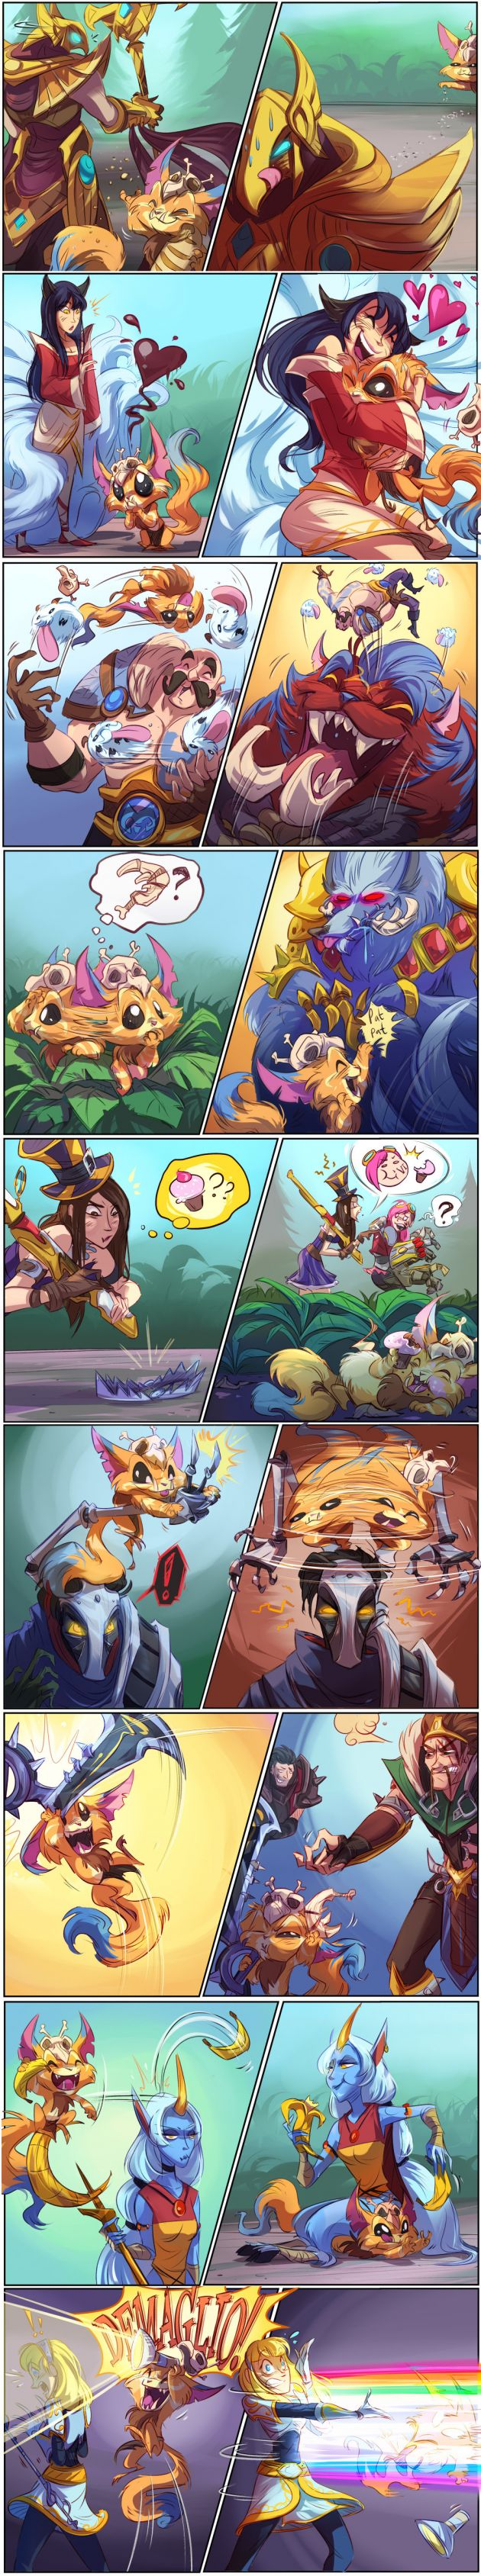 Playtime with gnar!